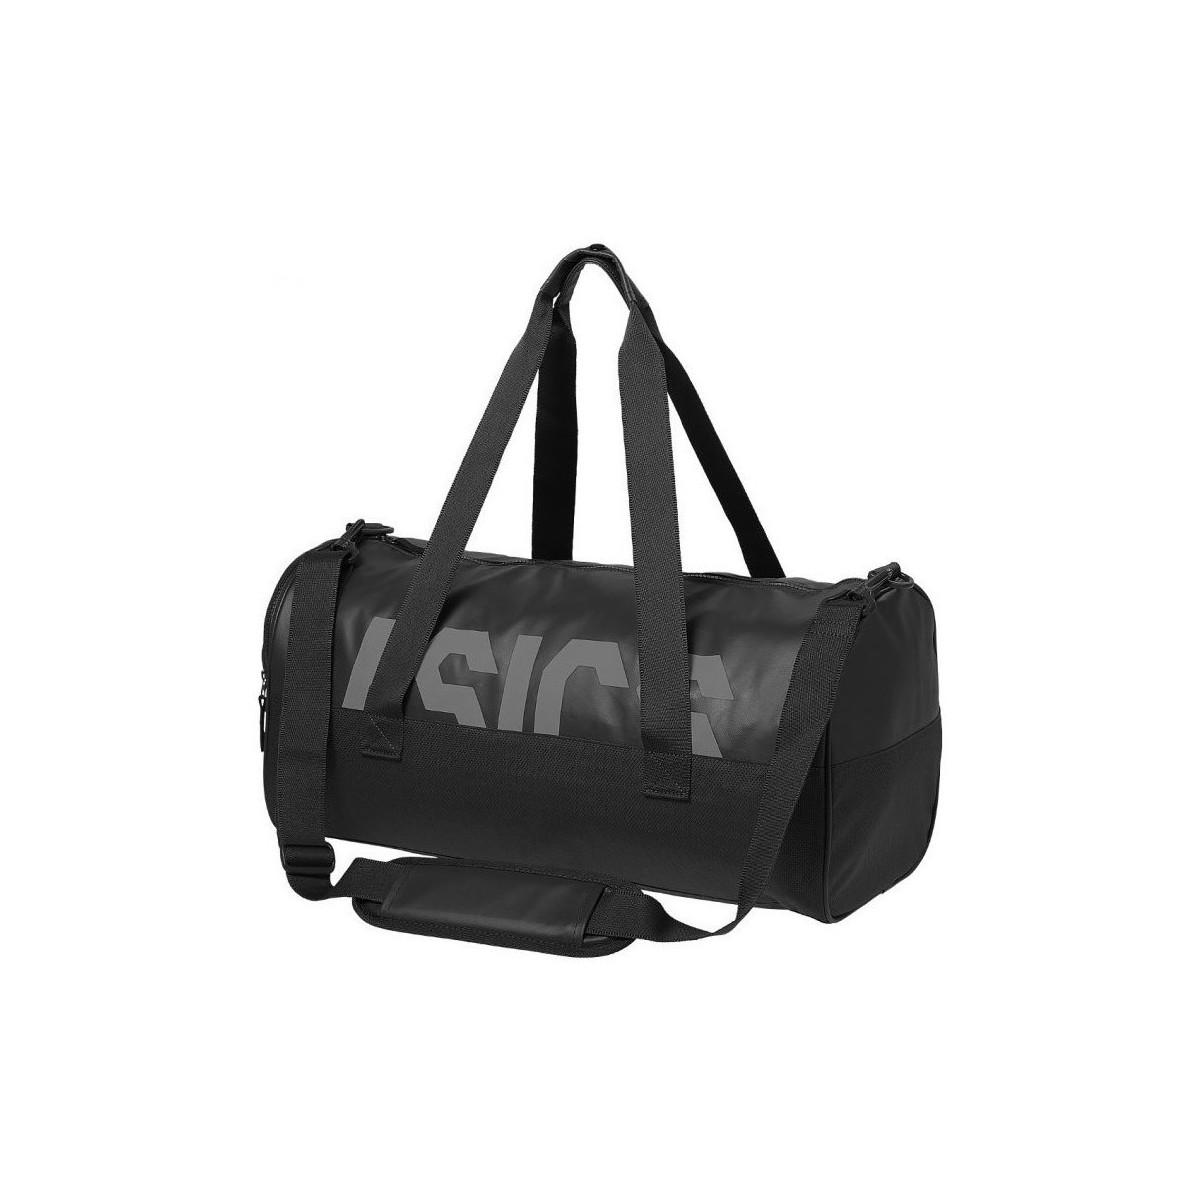 1a4ef5a54f Asics Tr Core Holdall Men s Travel Bag In Multicolour in Black for ...